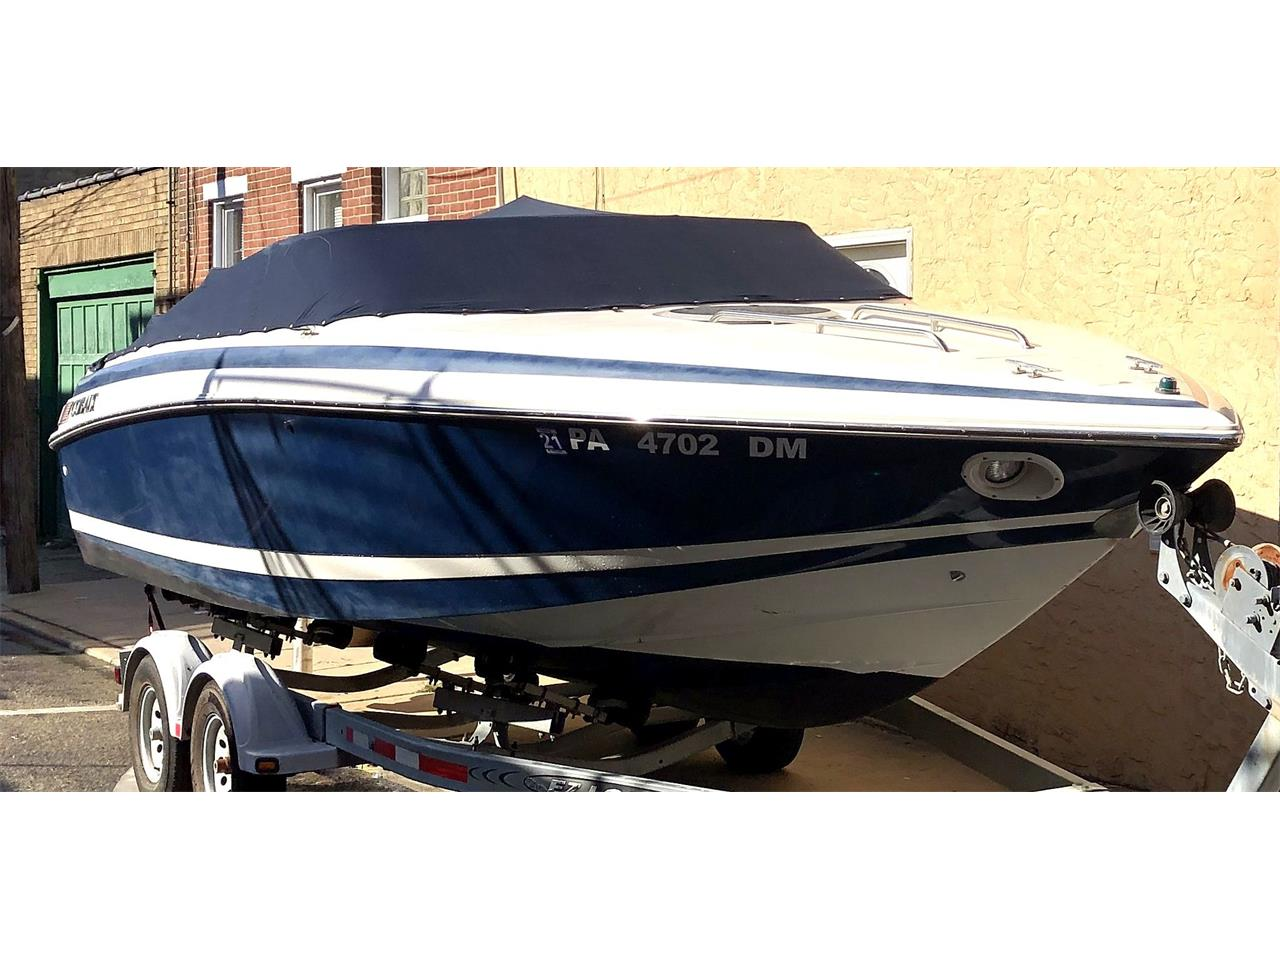 1998 Miscellaneous Boat (CC-1302542) for sale in Stratford, New Jersey